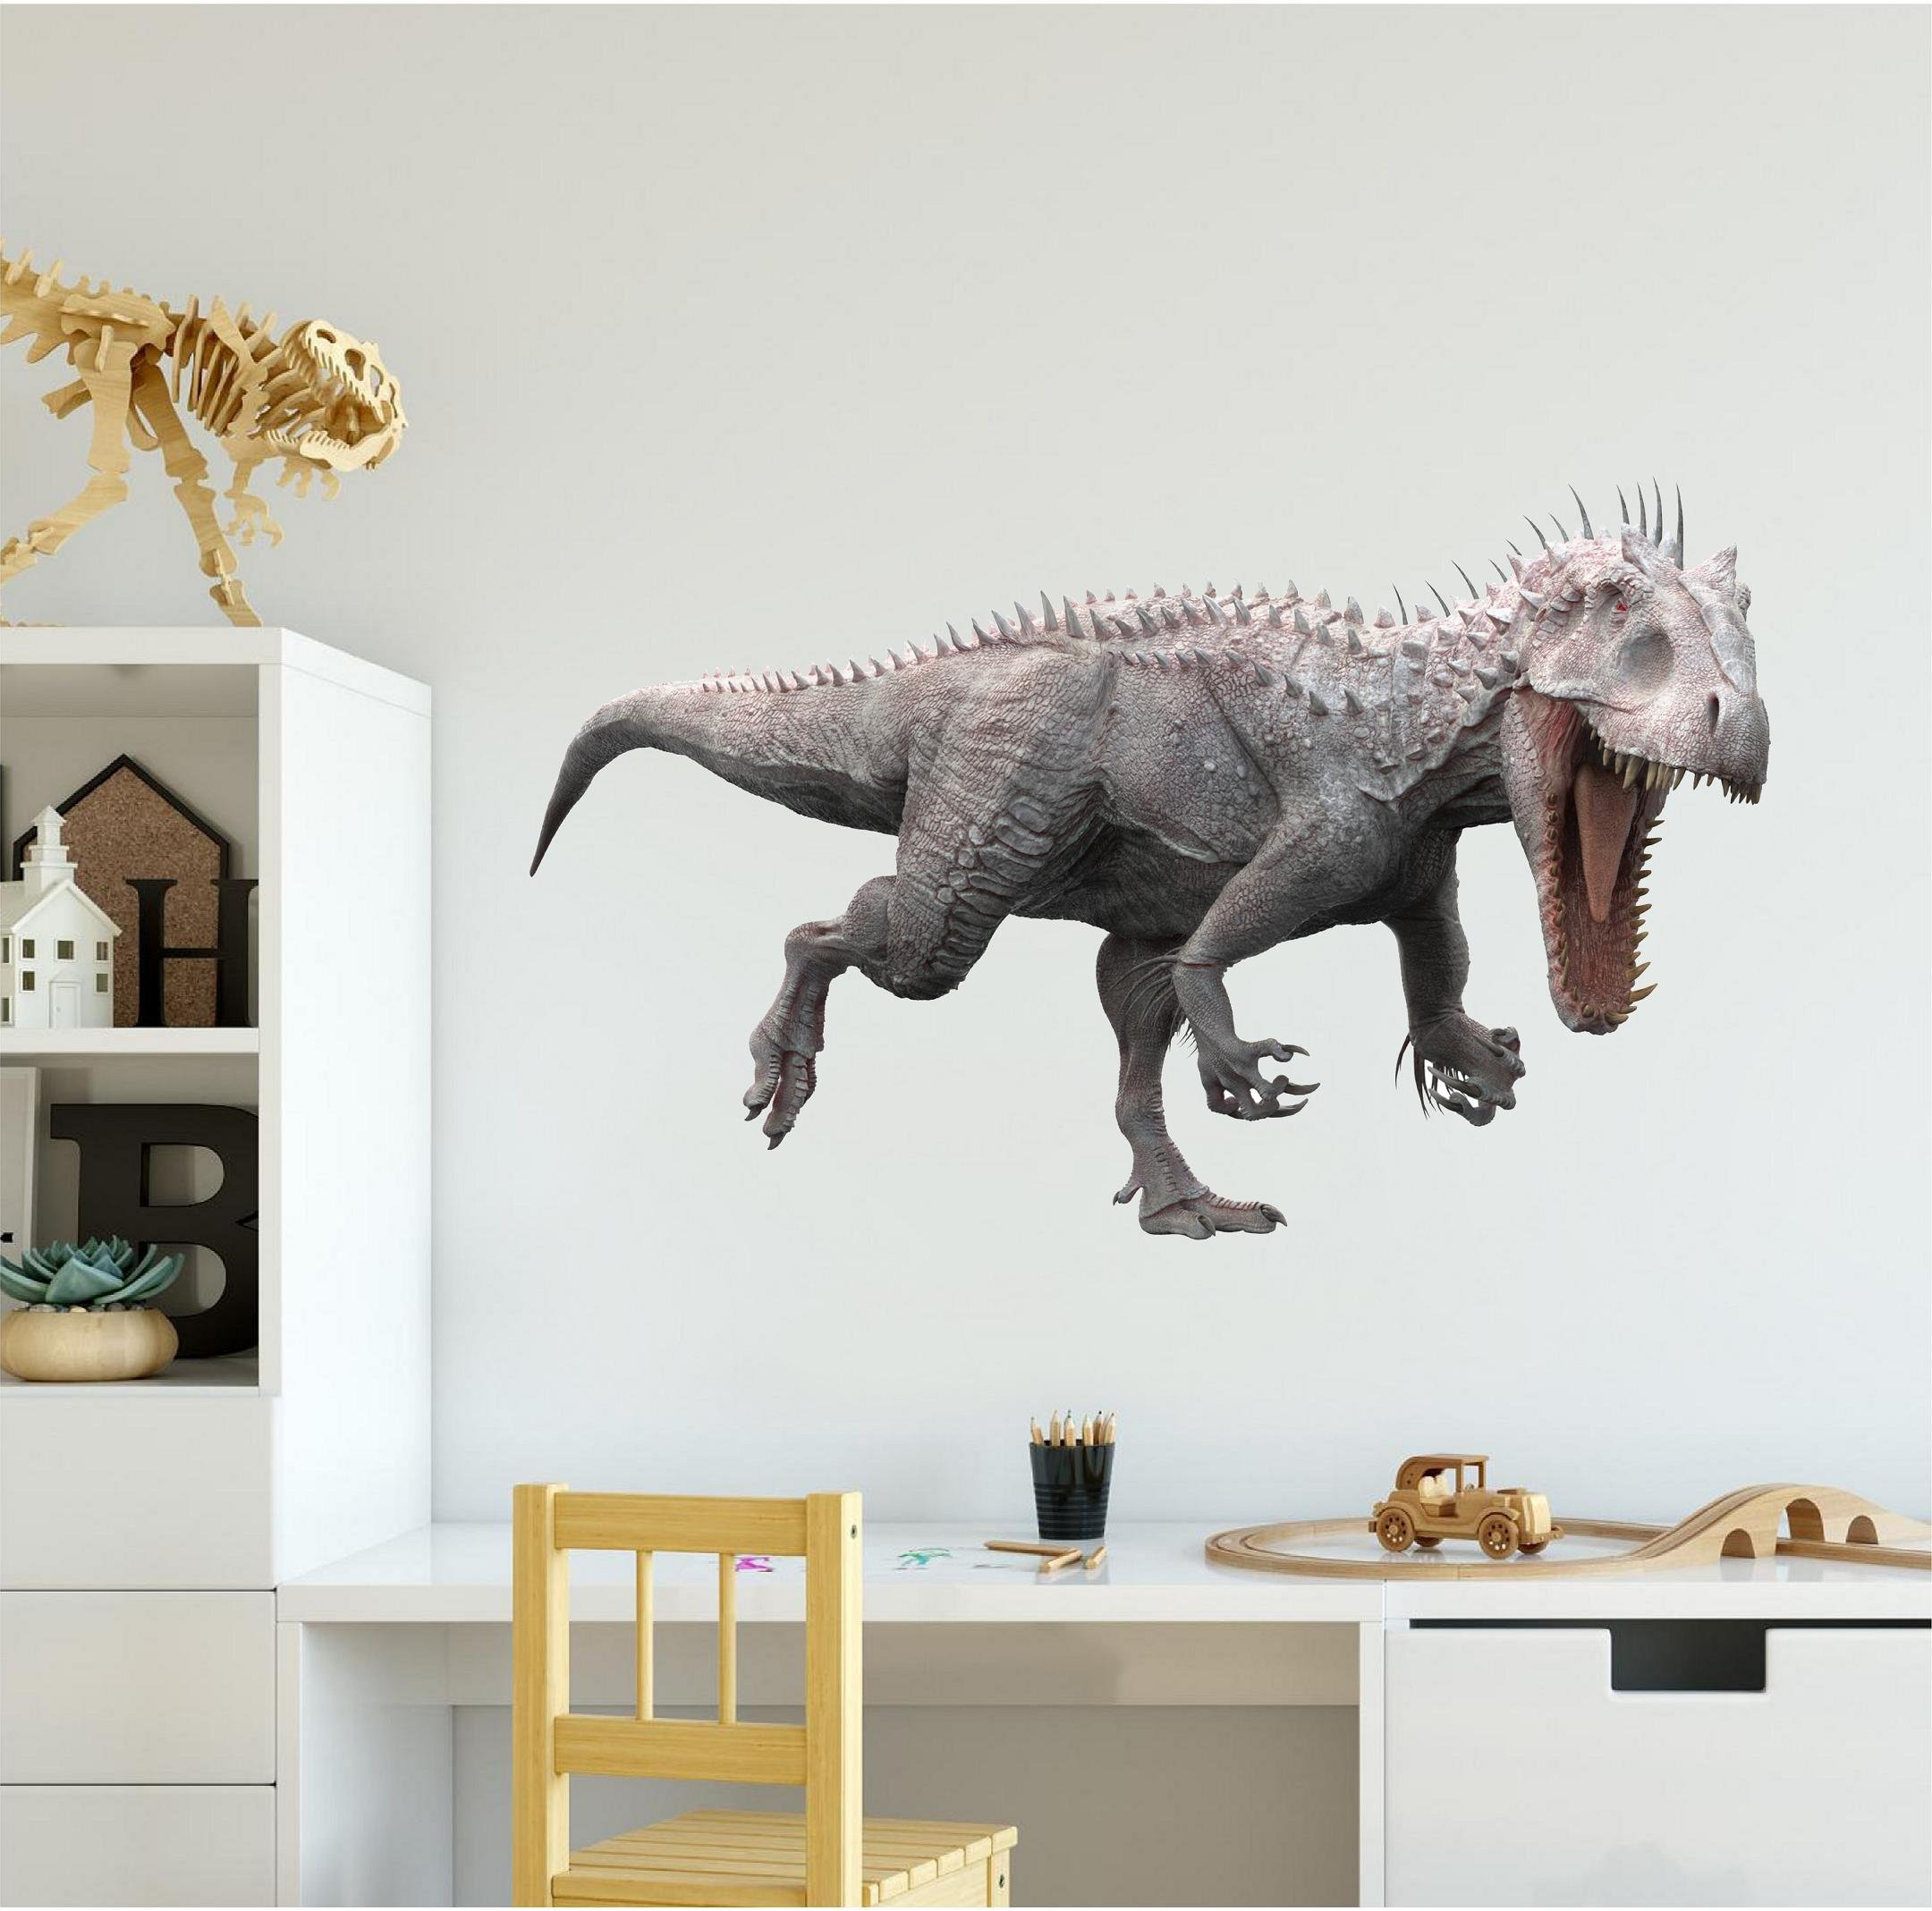 48'' Indominus Rex 3D Dinosaur HUGE Wall Sticker Decal Removable Fabric Vinyl Home Kids Boys Bedroom Decor Birthday Gift Game Room Man Cave Garage Art Decor